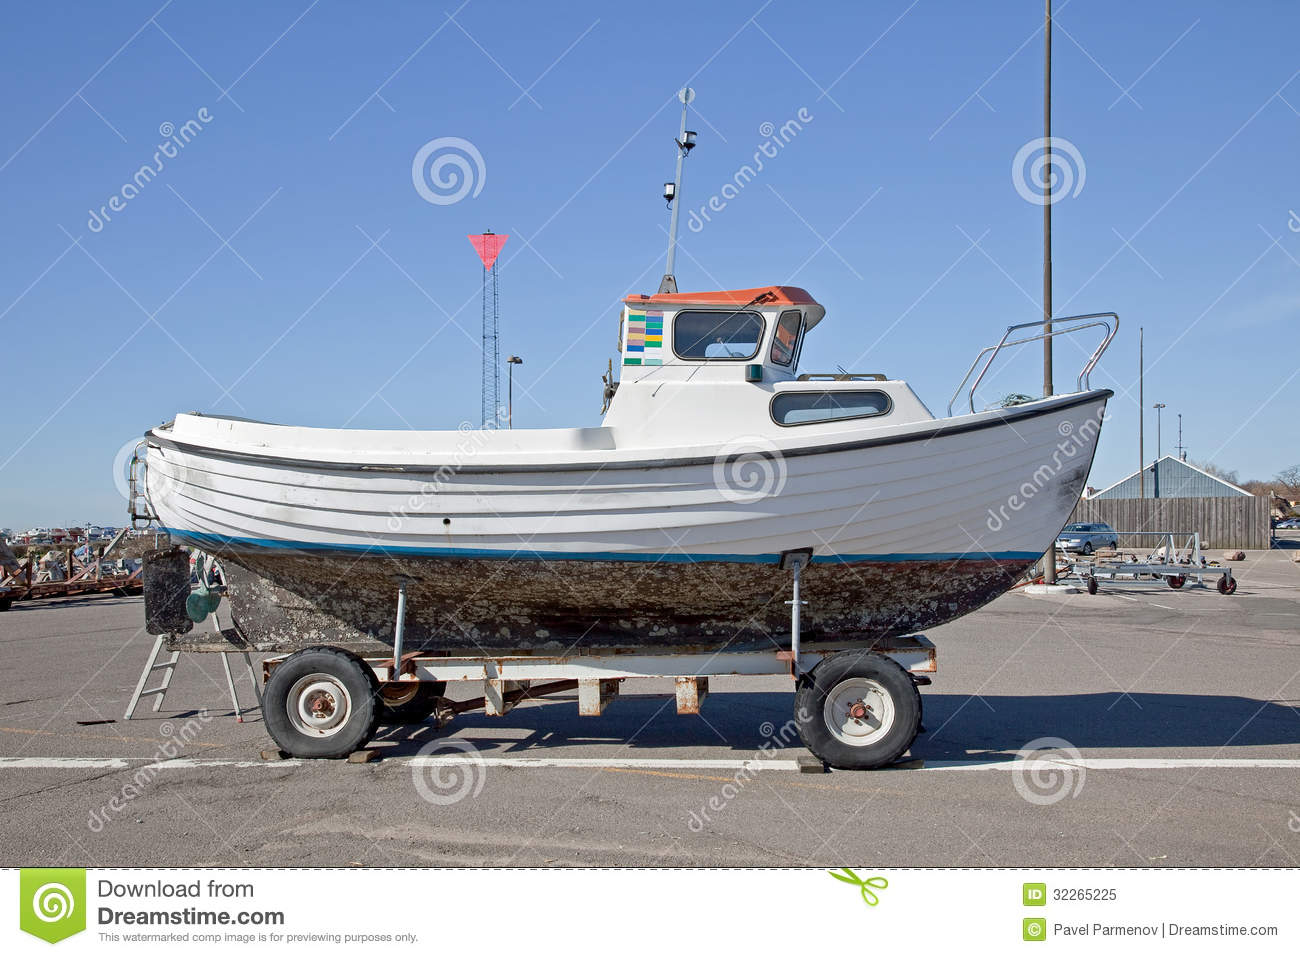 Boat on wheels royalty free stock photo image 32265225 for Boat garage on water